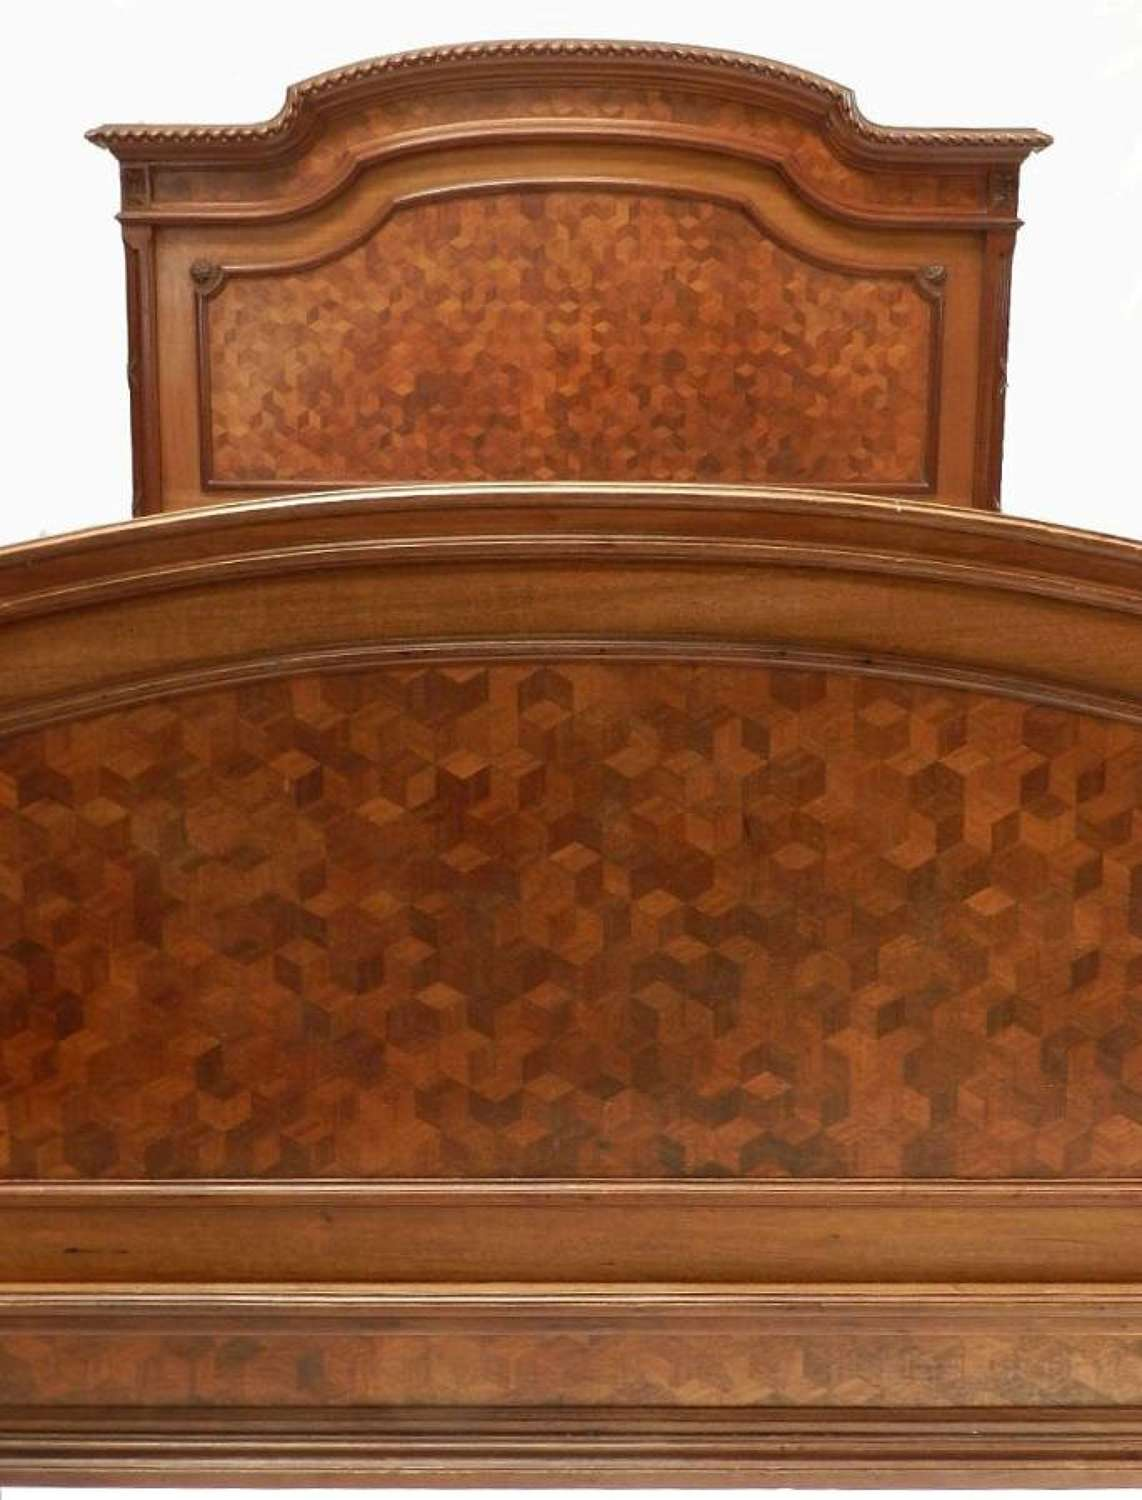 Very Unusual C19 Louis XVI French Double Bed or King Size Bed + Base Marquetry